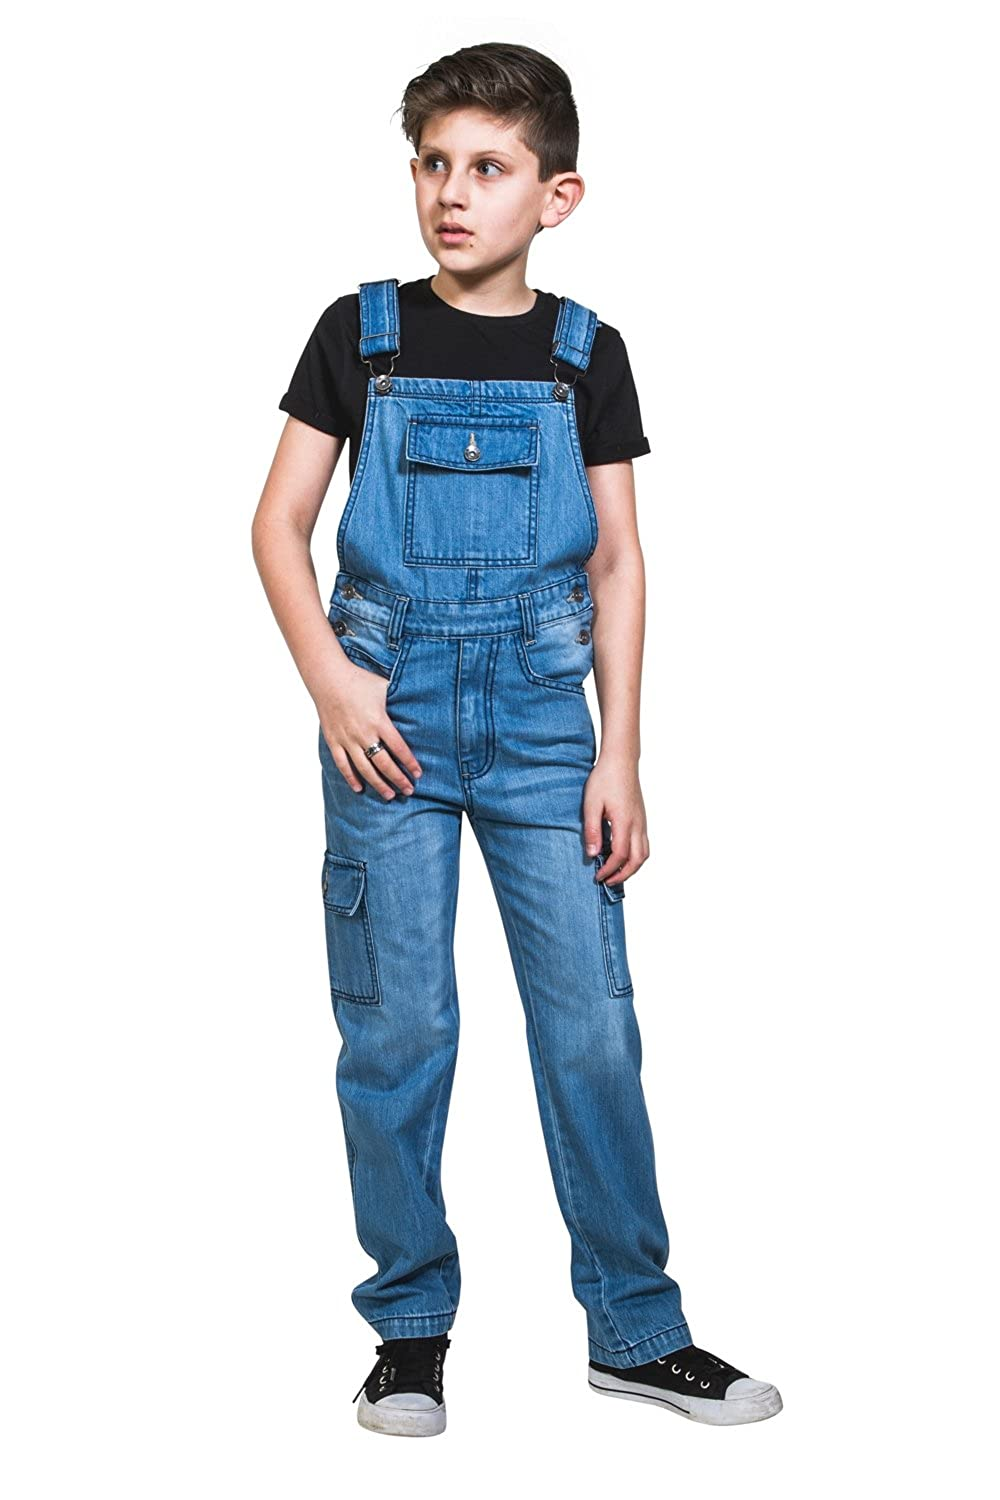 Vintage Style Children's Clothing: Girls, Boys, Baby, Toddler Uskees Kids Palewash Denim Dungarees Age 4-14 Boys Girls Cargo Overalls BENJAMINPW £29.99 AT vintagedancer.com